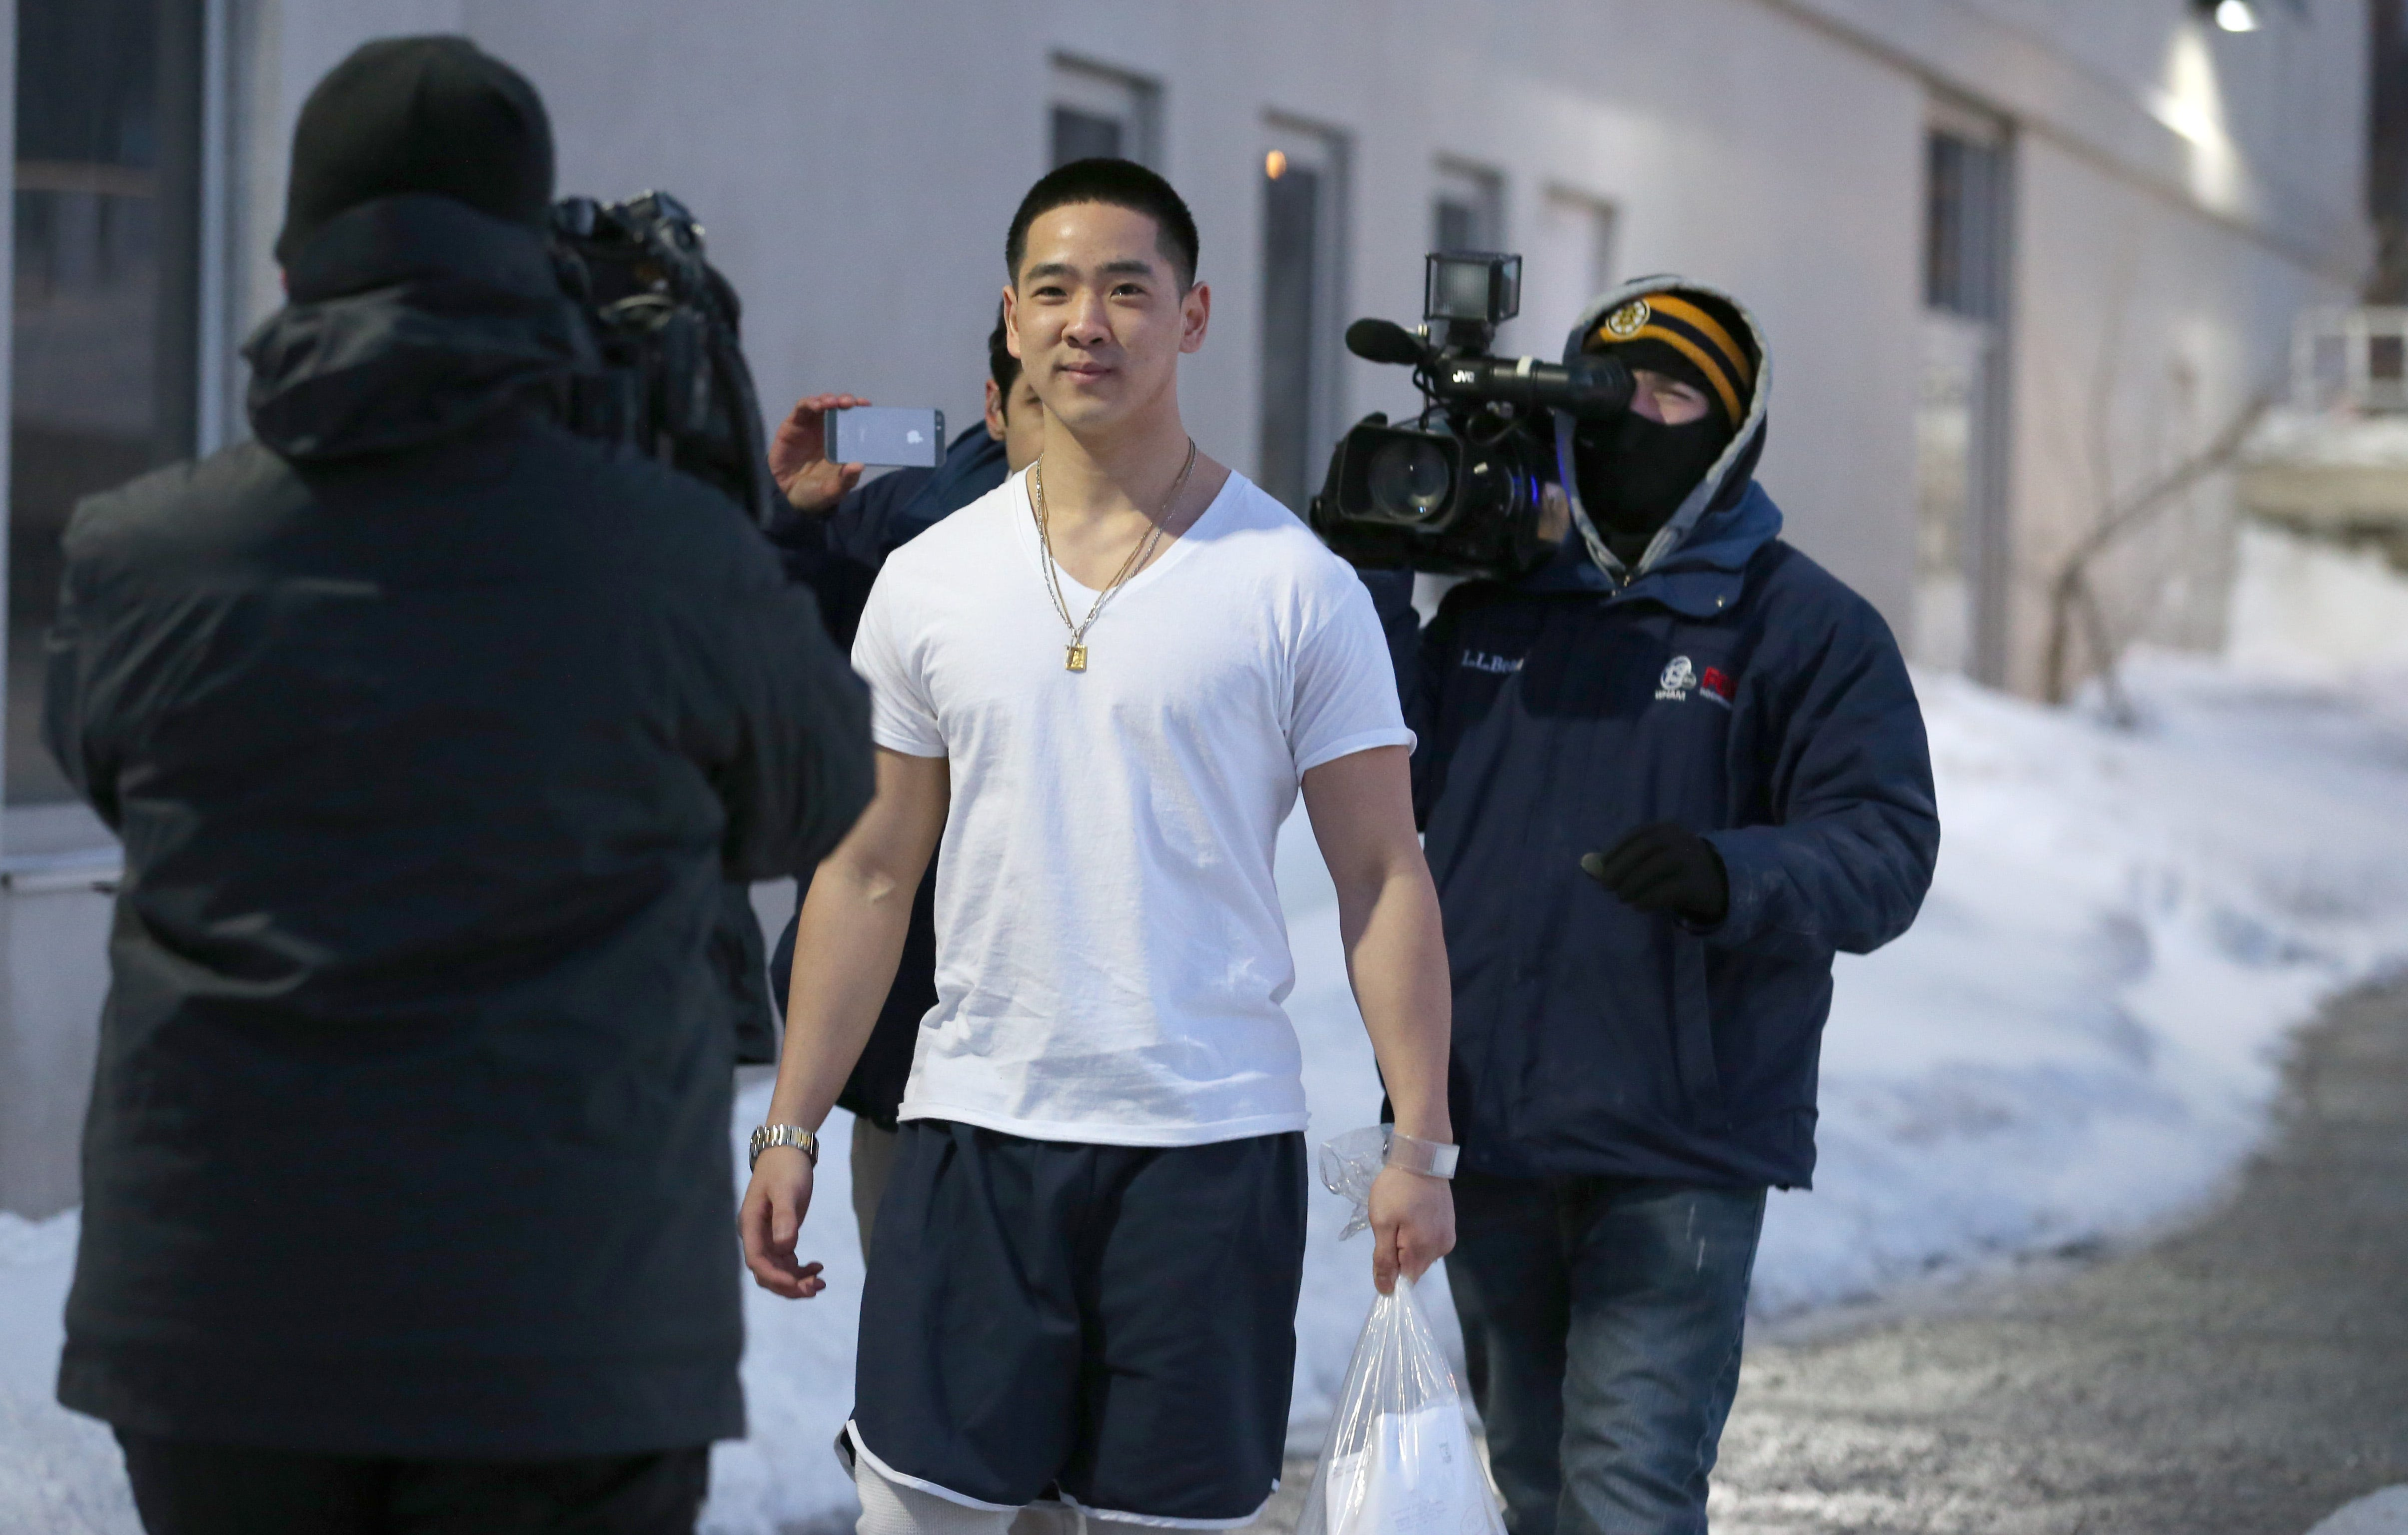 Charles Tan will not testify in trial over dad's killing